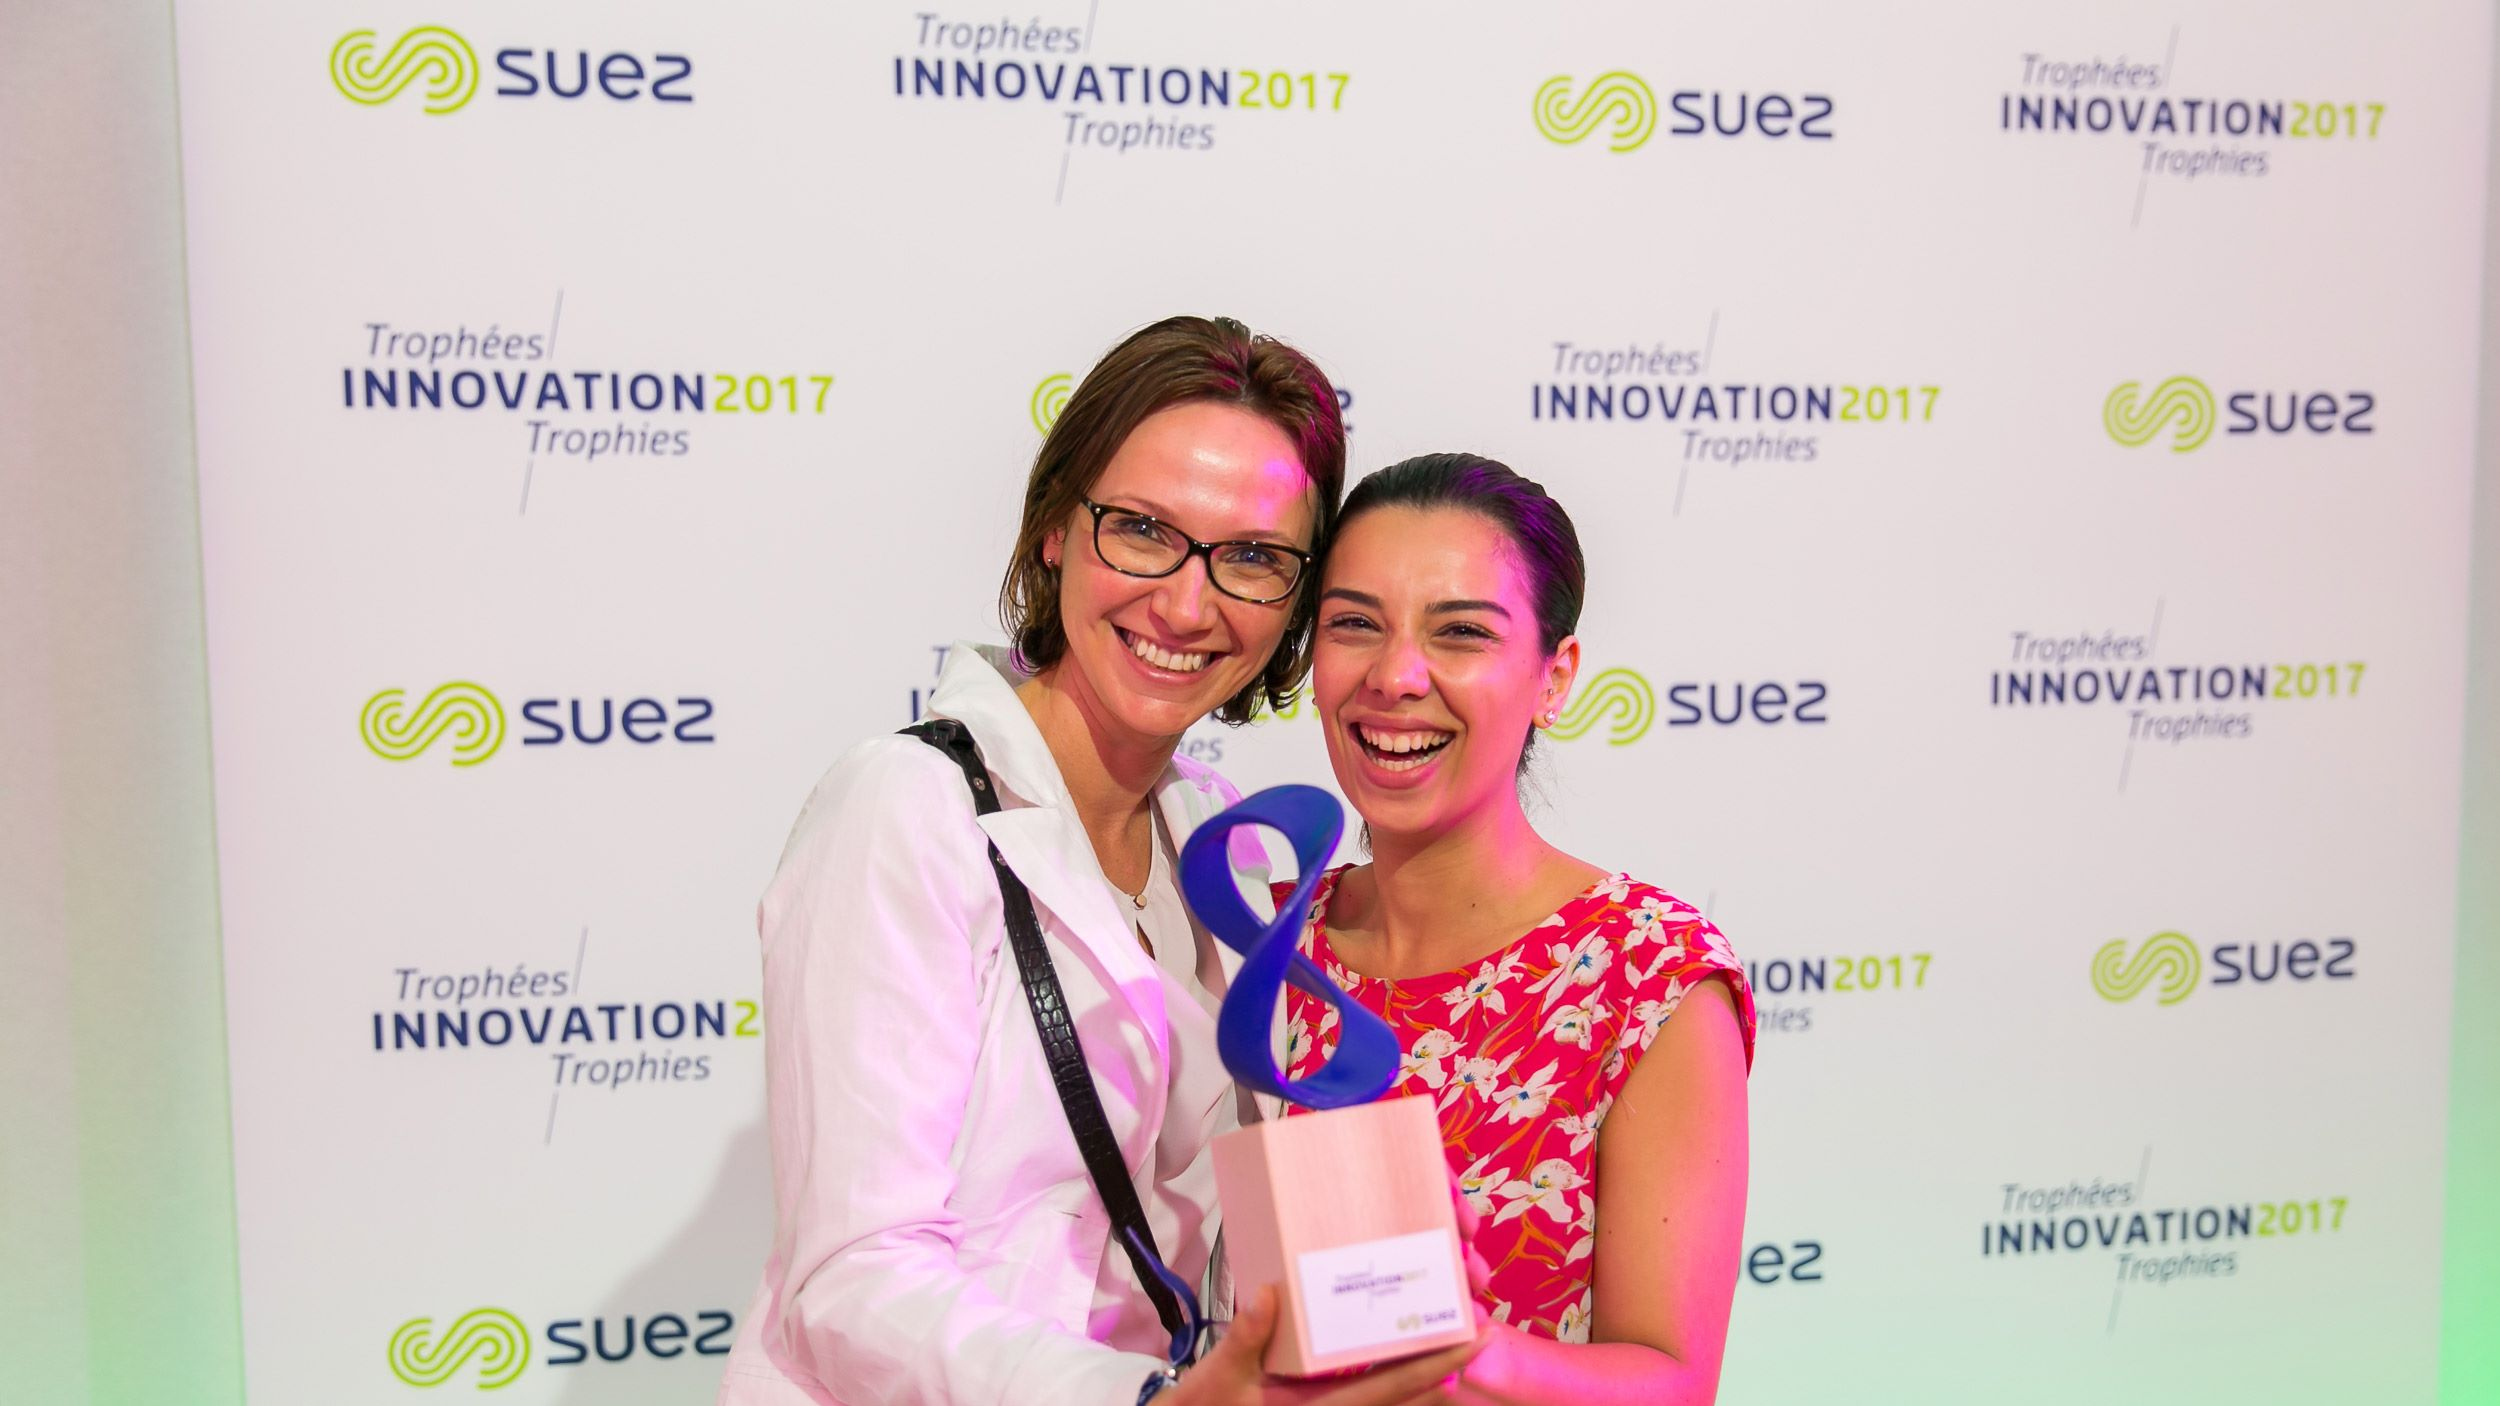 Innovation trophies 2017